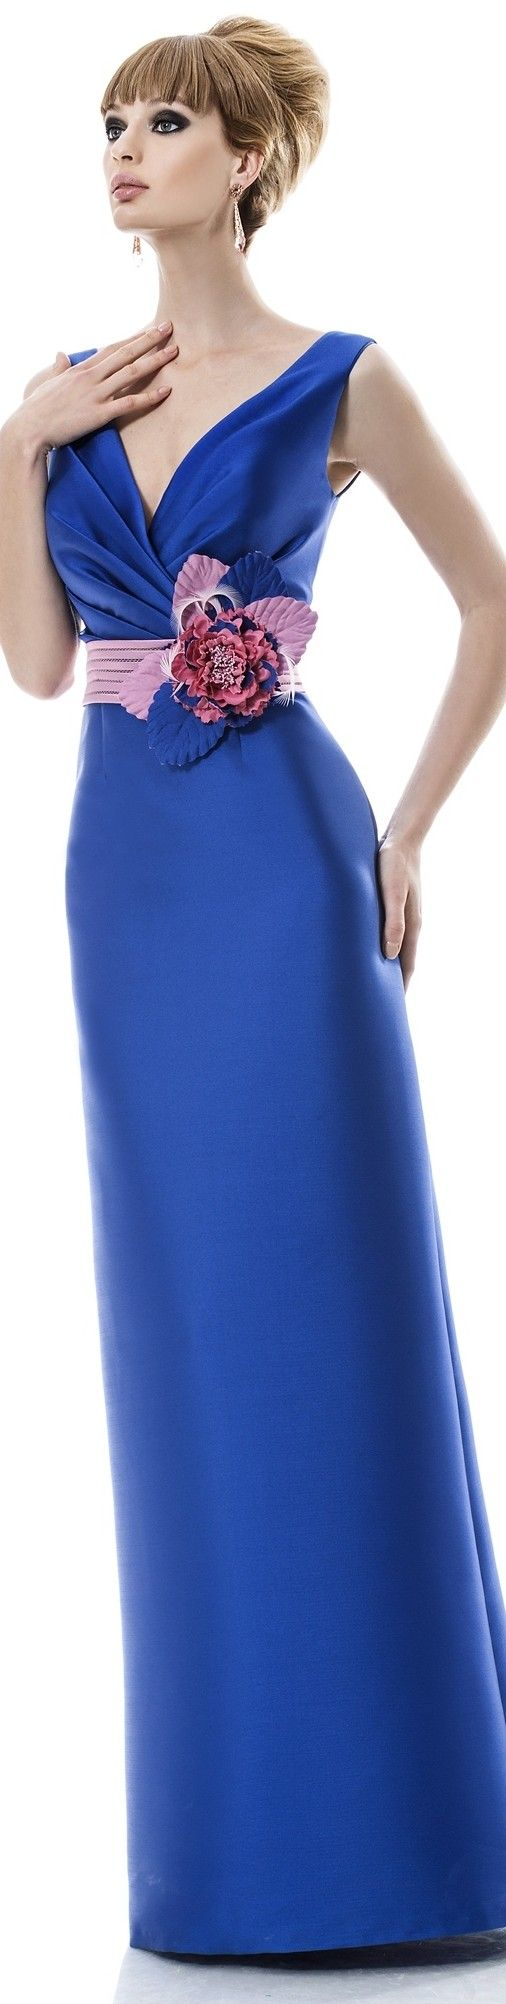 Angela ariza bridesmaids pinterest blue dresses gowns and